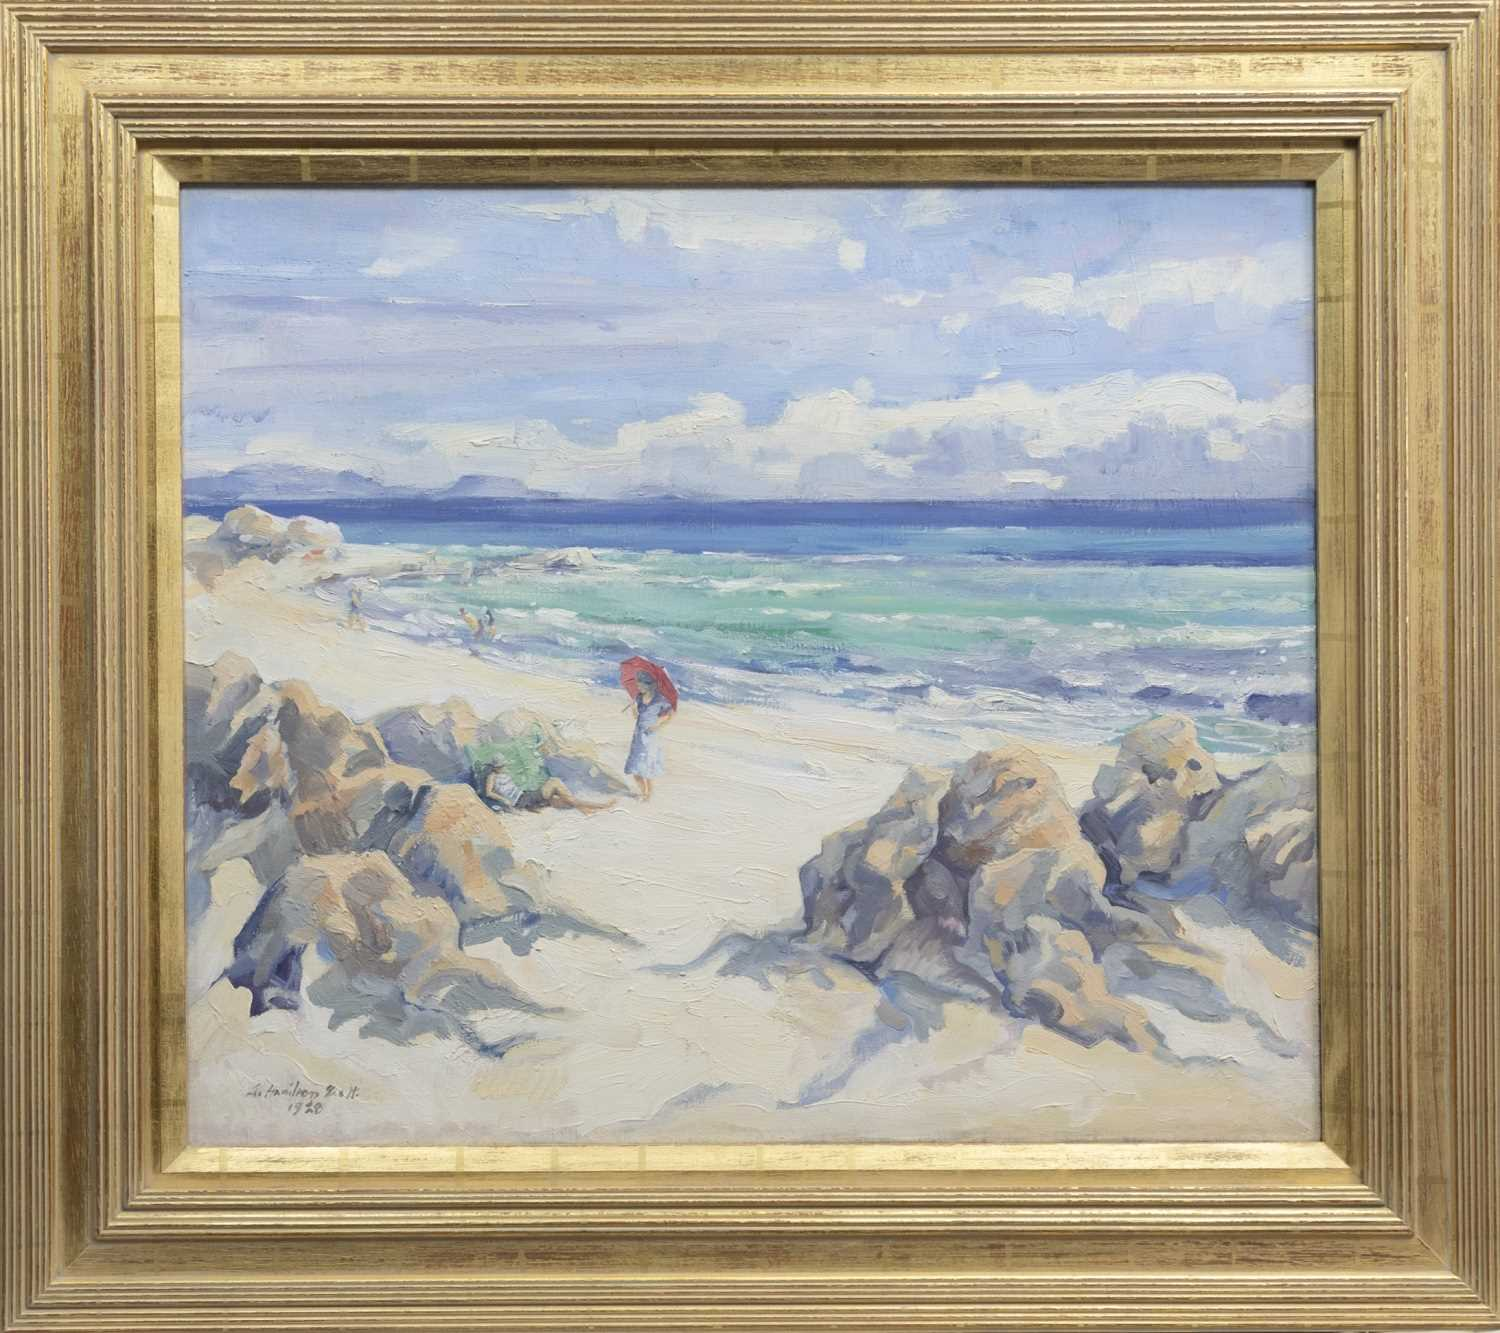 Lot 11 - THE RED PARASOL 1928, AN OIL BY ALEXANDER HAMILTON SCOTT